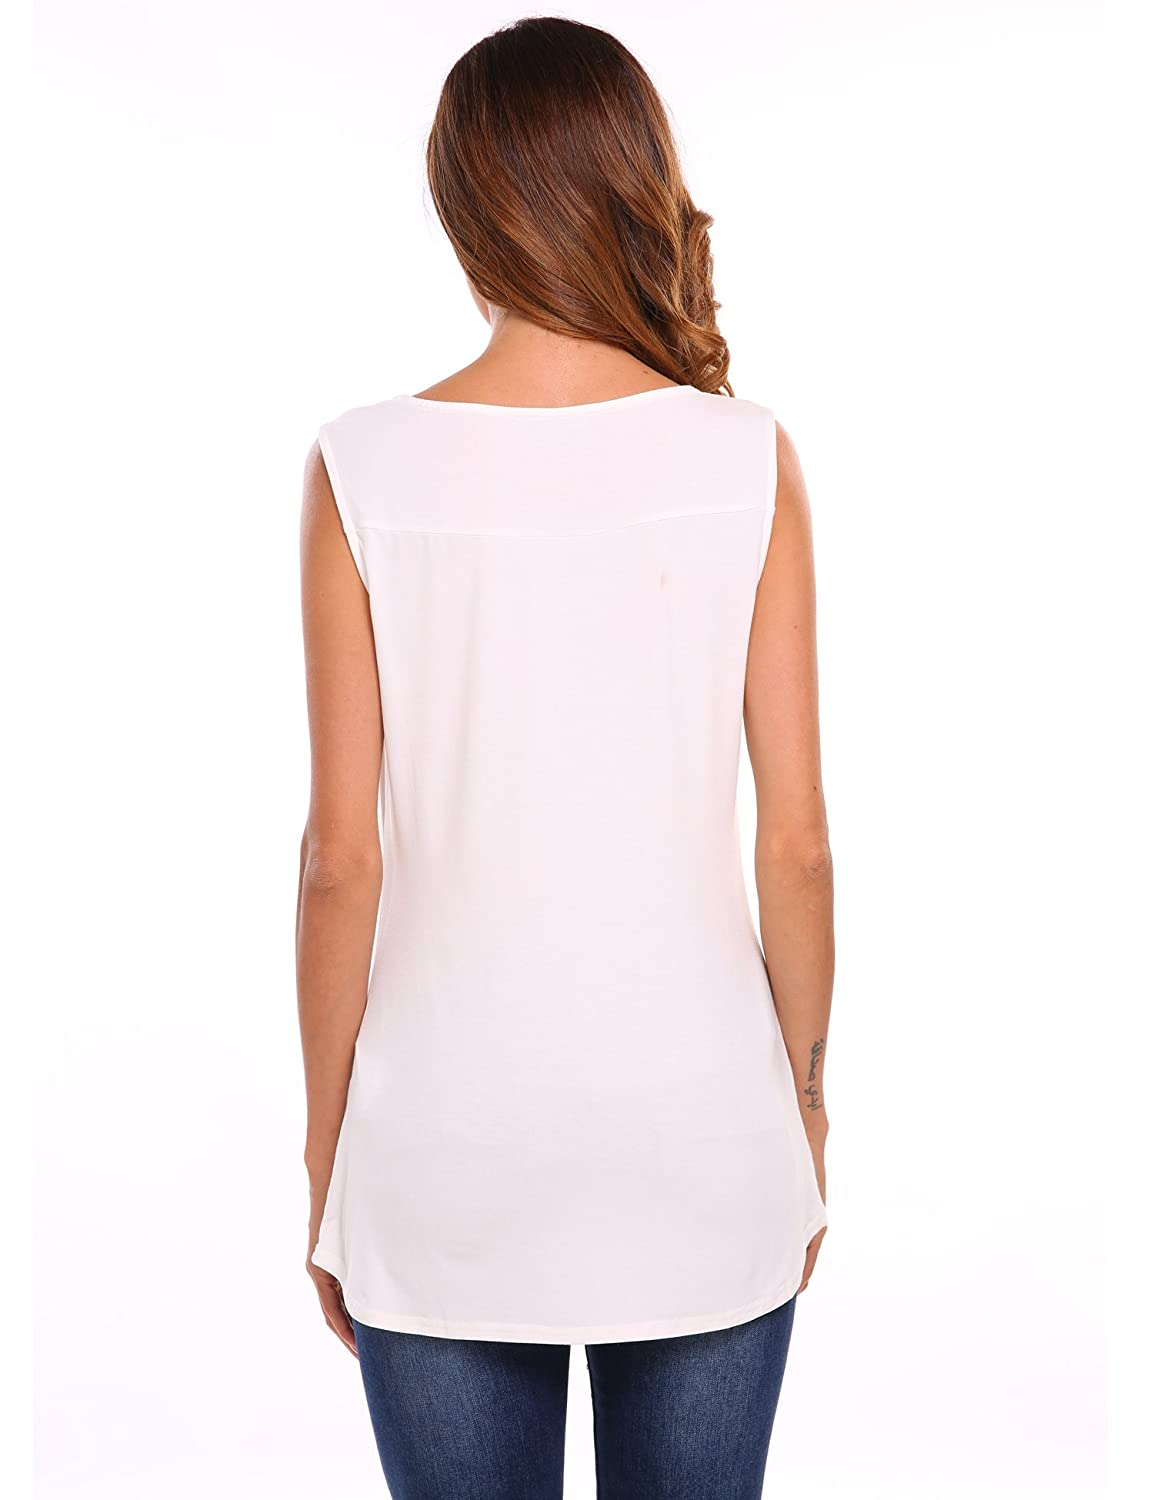 4cd5da8972baa Zeagoo Women s Summer Sleeveless Blouse Basic Comfy Flowy Tank Top at  Amazon Women s Clothing store